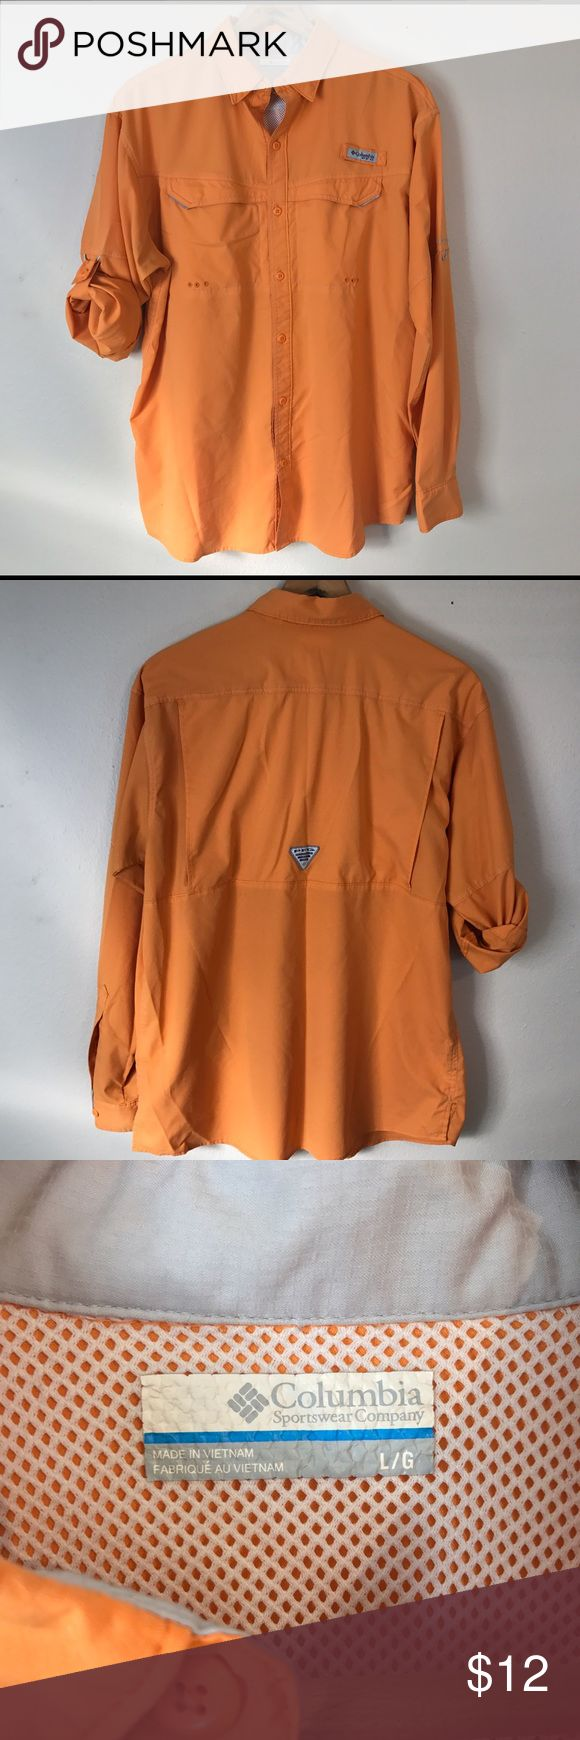 """Columbia PFG """"Low Drag Offshore"""" Long Sleeve Shirt Orange Columbia PFG """"Low Drag Offshore"""" long sleeve shirt. Size L. Supremely comfortable and light weight fishing shirt 🎣. In fair used condition. Some slight snags in fabric. Shown in last photo. Columbia Shirts Casual Button Down Shirts"""